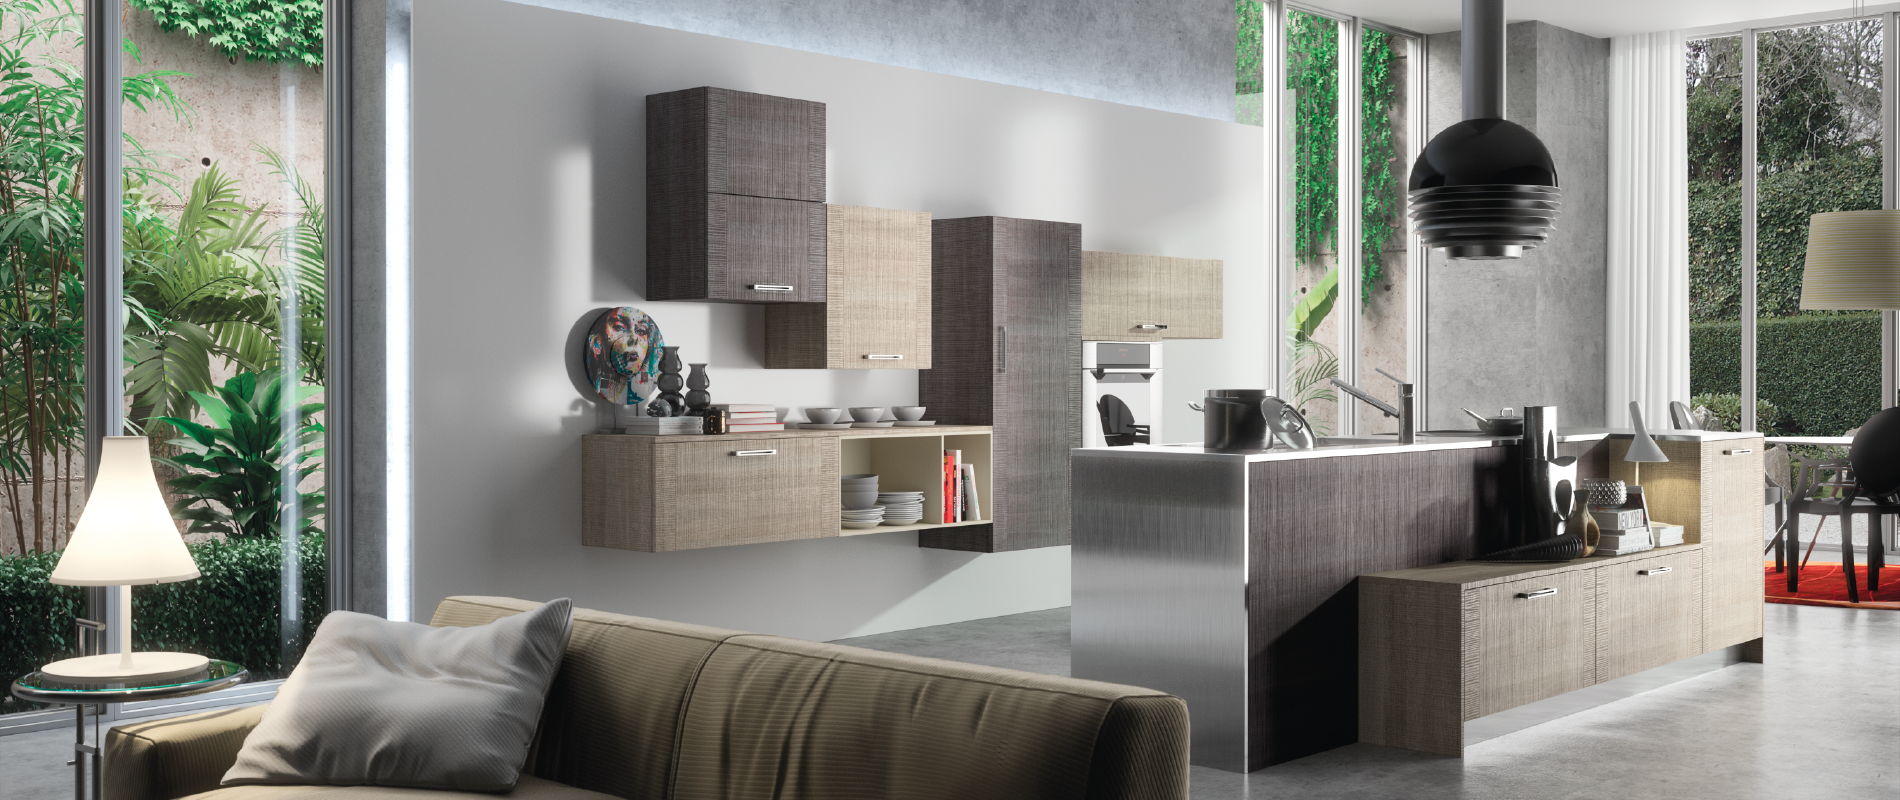 Belle Cuisine contemporaine EMMA - Sur mesure / Design, Haut de ...